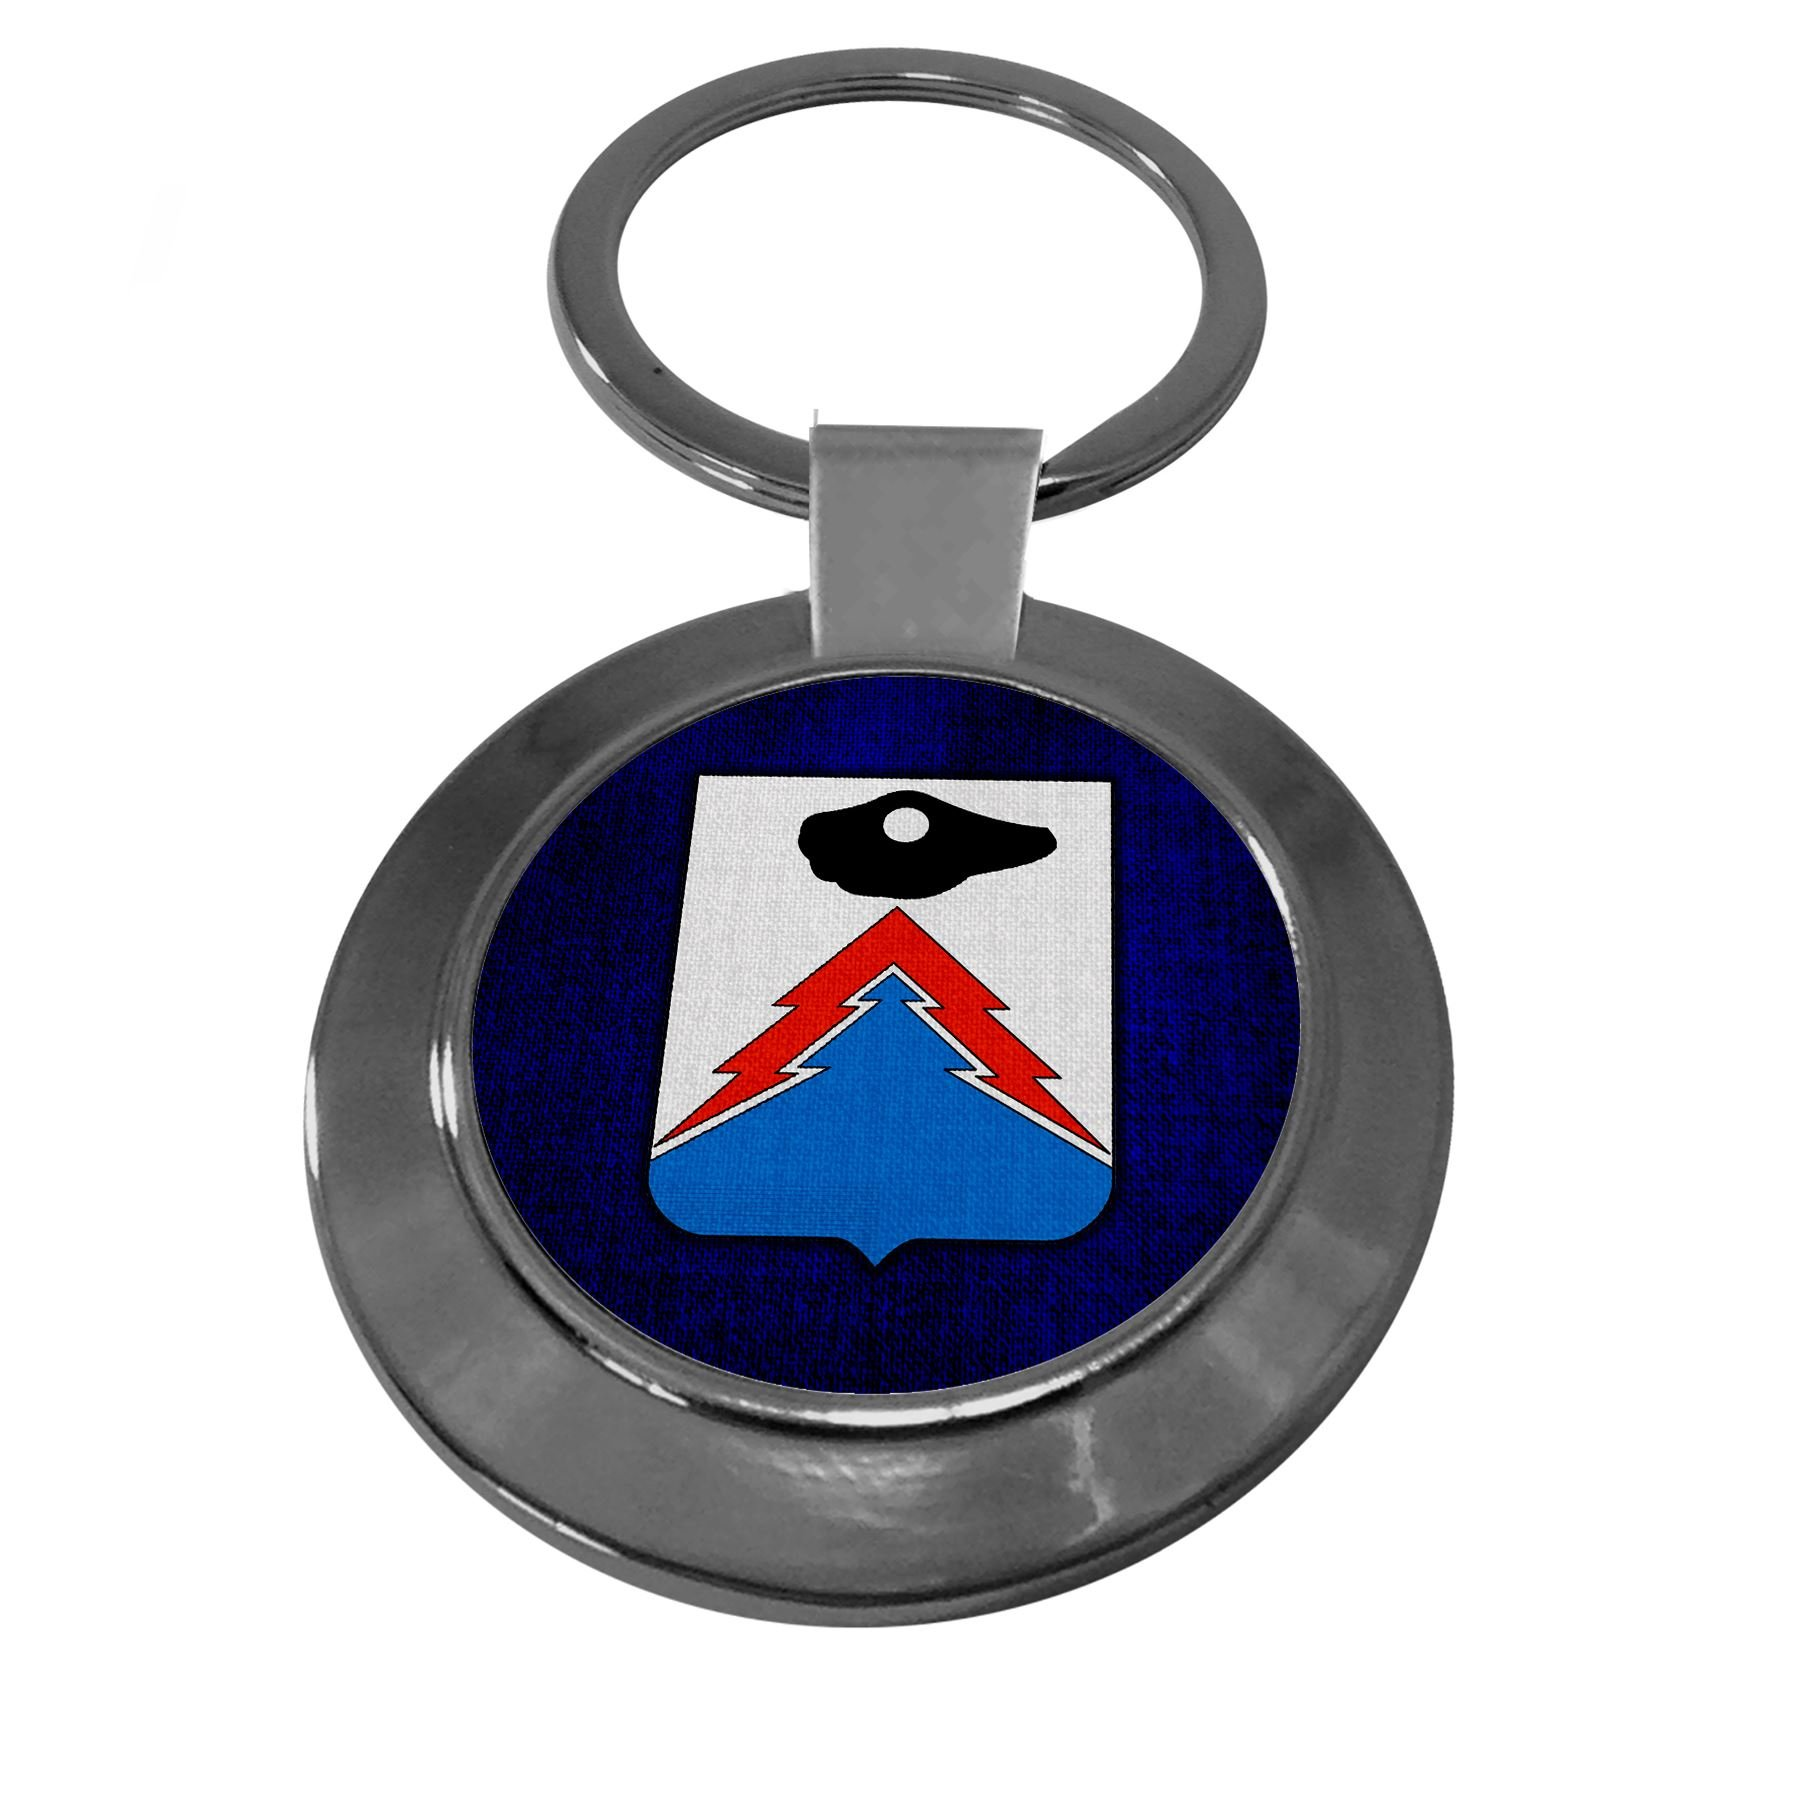 Premium Key Ring with U.S. Army 24th Signal Battalion, coat of arms